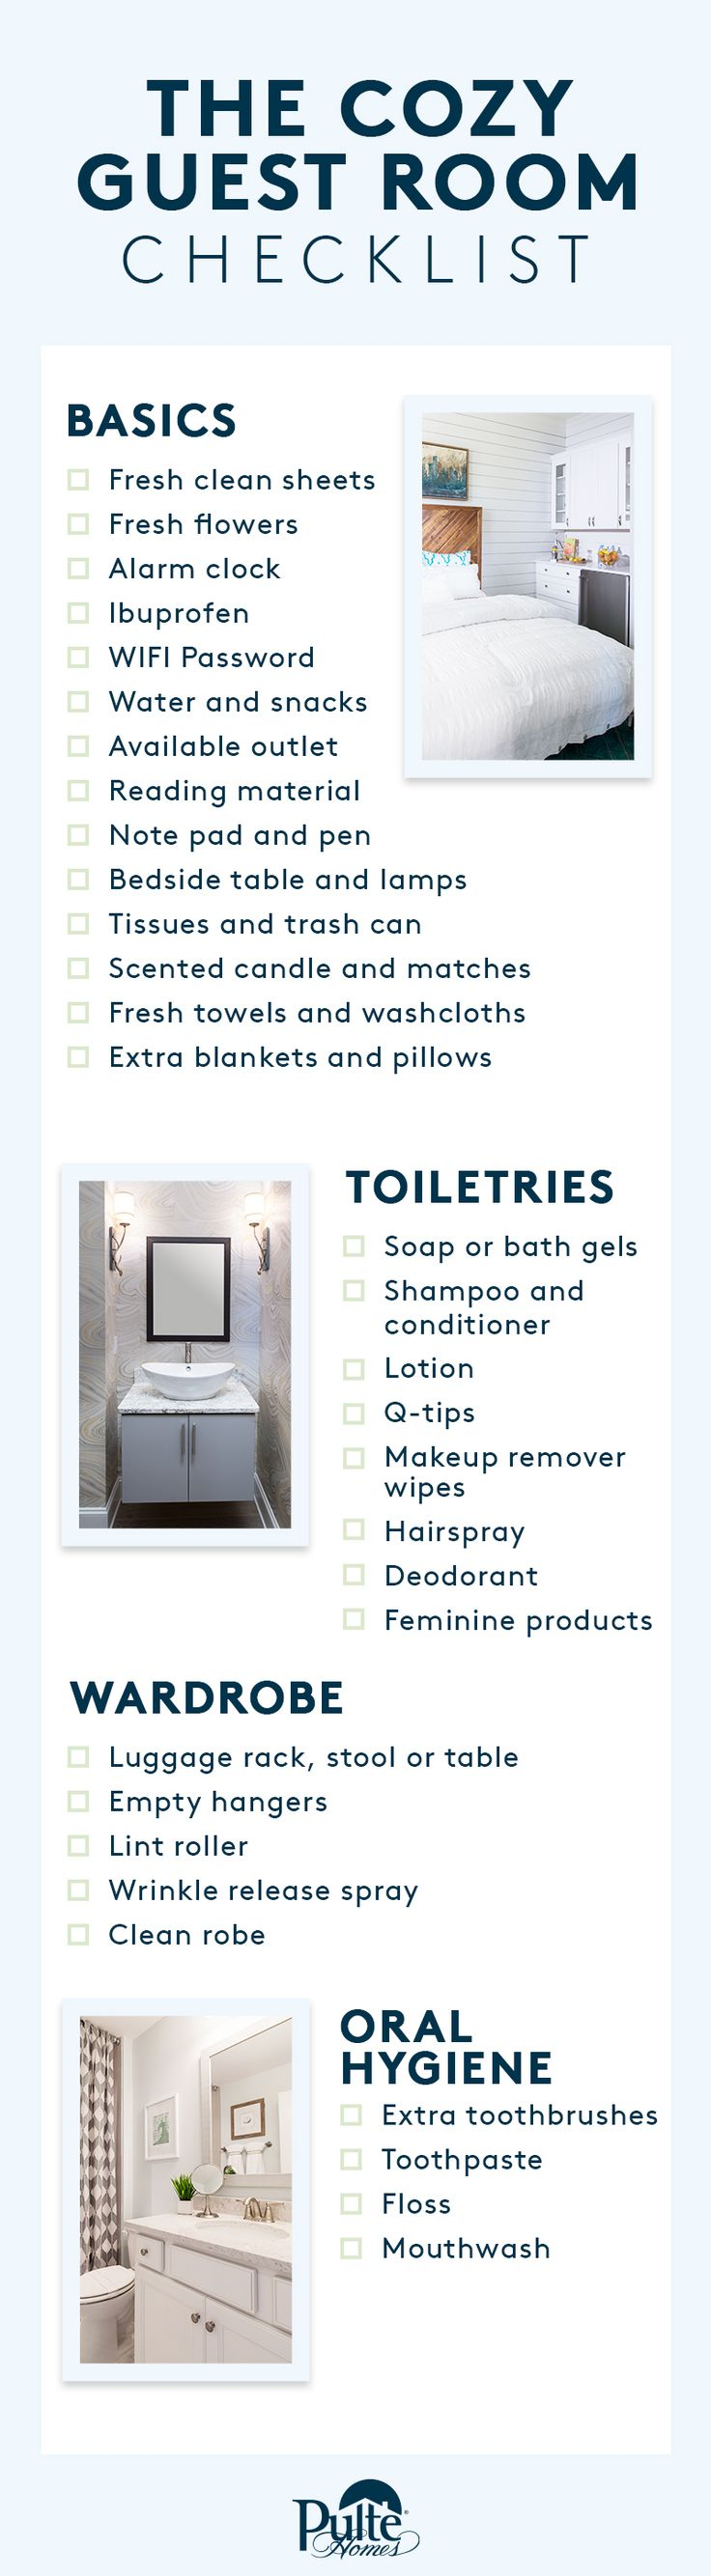 The holiday season is upon us, and with it comes hosting friends and family. Be prepared with this helpful checklist for your guest bedroom and bathroom that will have visitors feeling right at home. | Pulte Homes